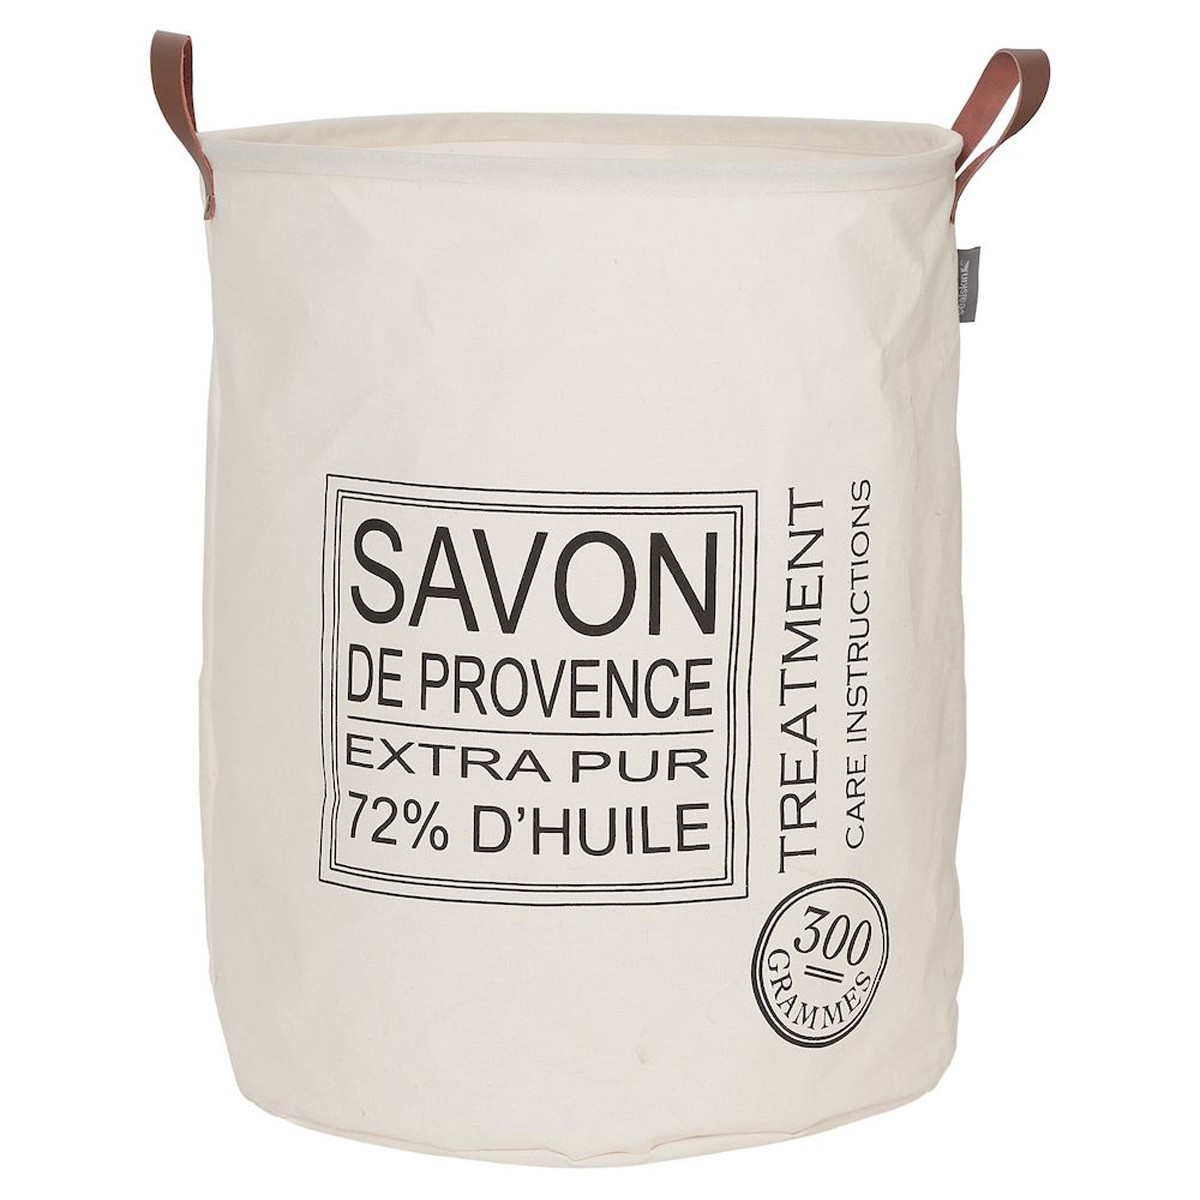 Καλάθι Απλύτων SealSkin Laundry Bag Savon De Provence